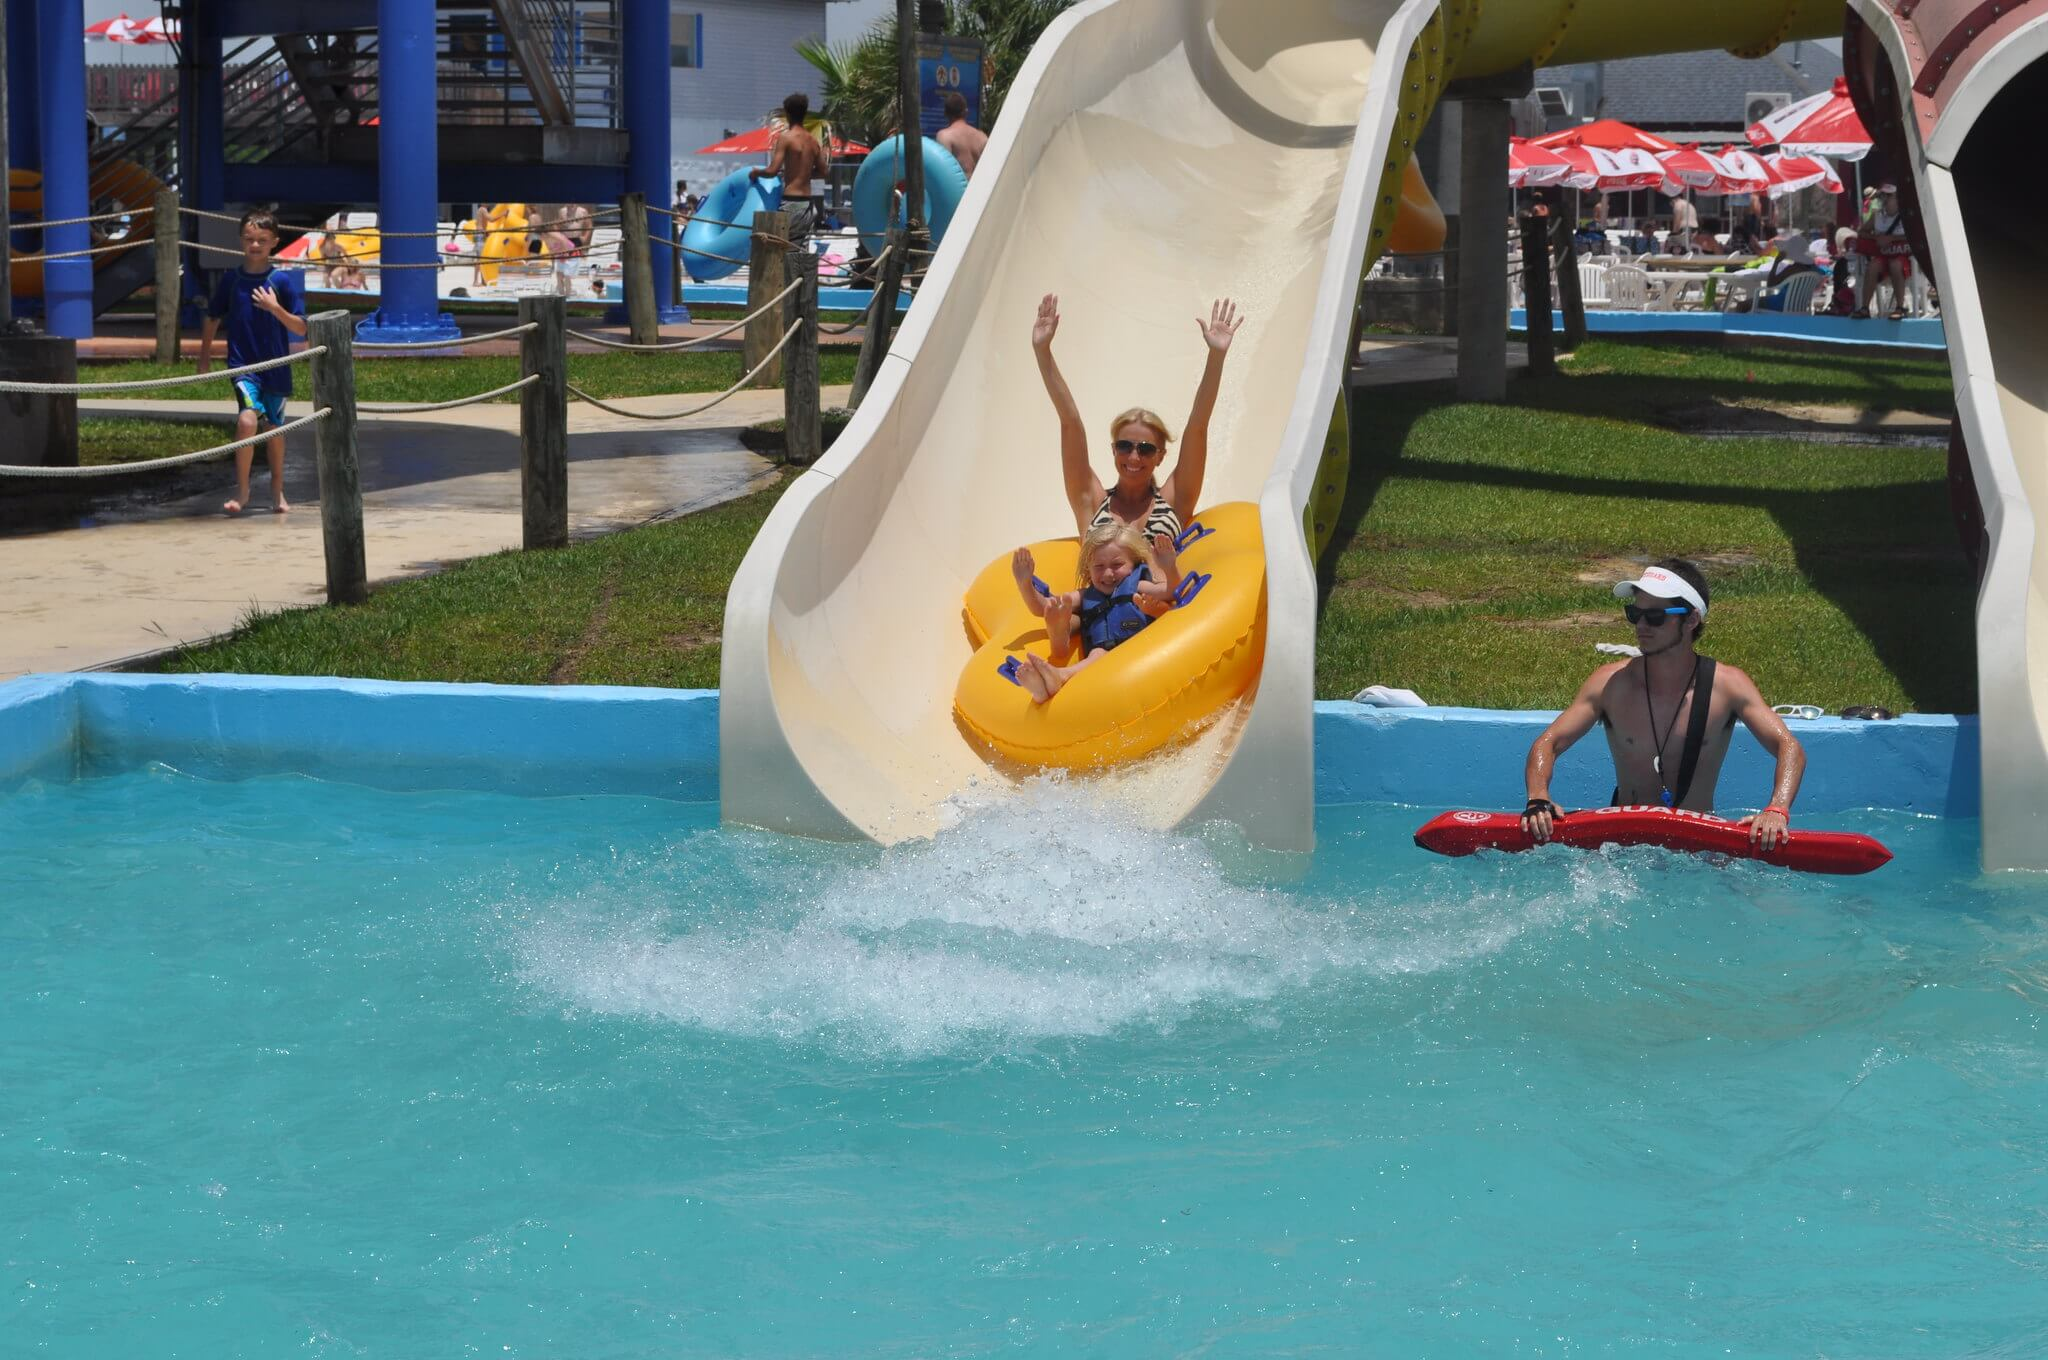 mom and child sliding down waterslide with hands in the air, lifeguard standing in the pool